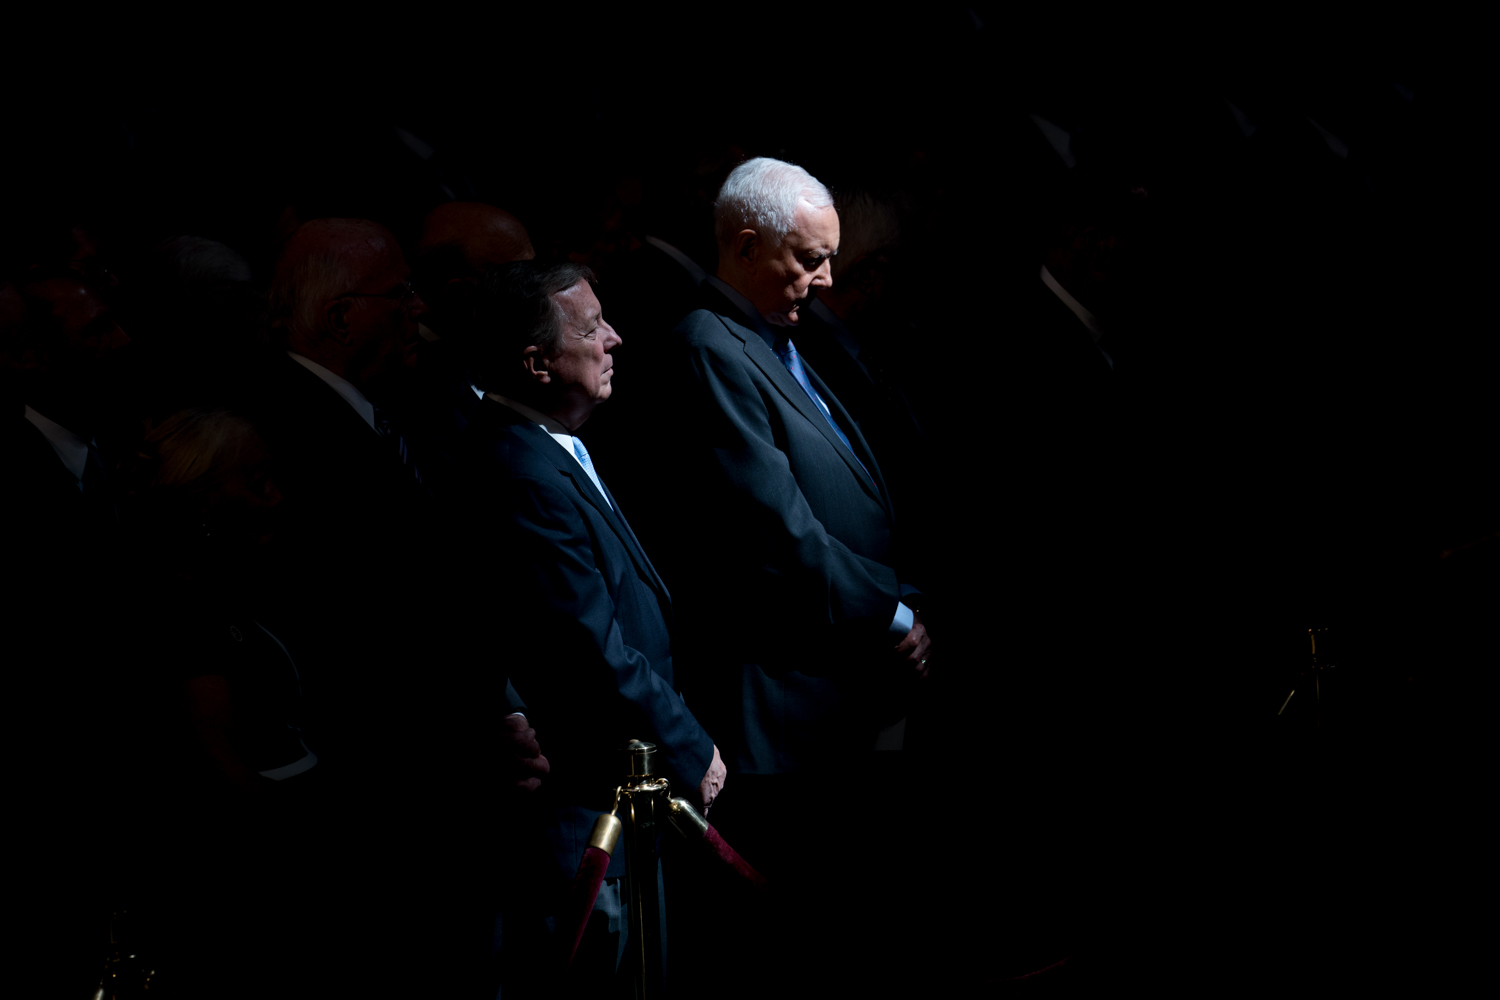 Senators Dick Durbin (D-Il), left, and Orrin Hatch (R-UT) during a ceremony to honor the late Senator John McCain in the Rotunda of the U.S. Capitol, in Washington, DC on August 31, 2018.(Erin Schaff for The New York Times)